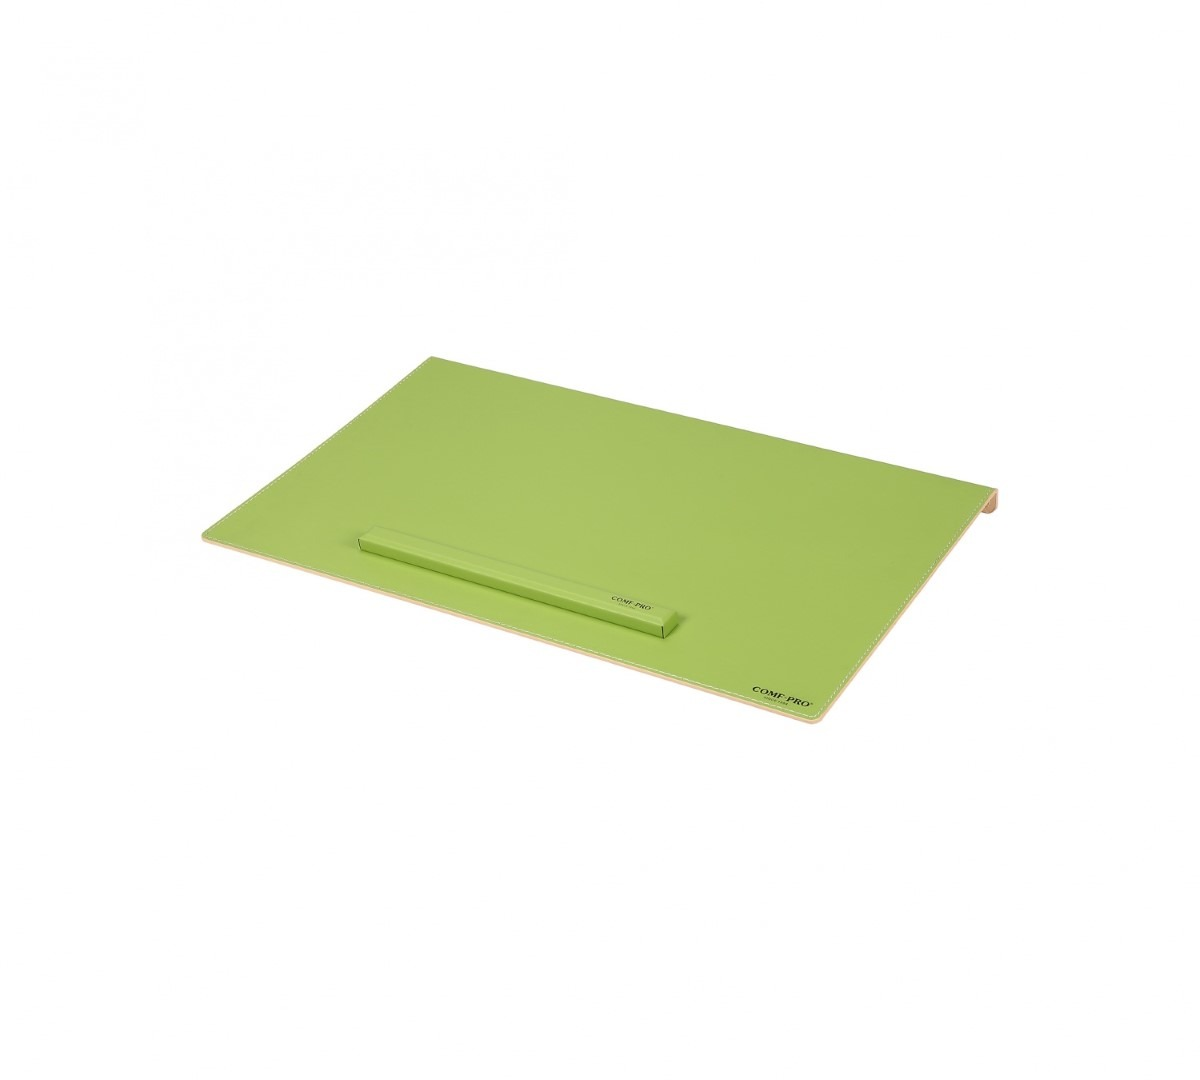 Ergo-Intelligent-Desktop-Pad-Green1